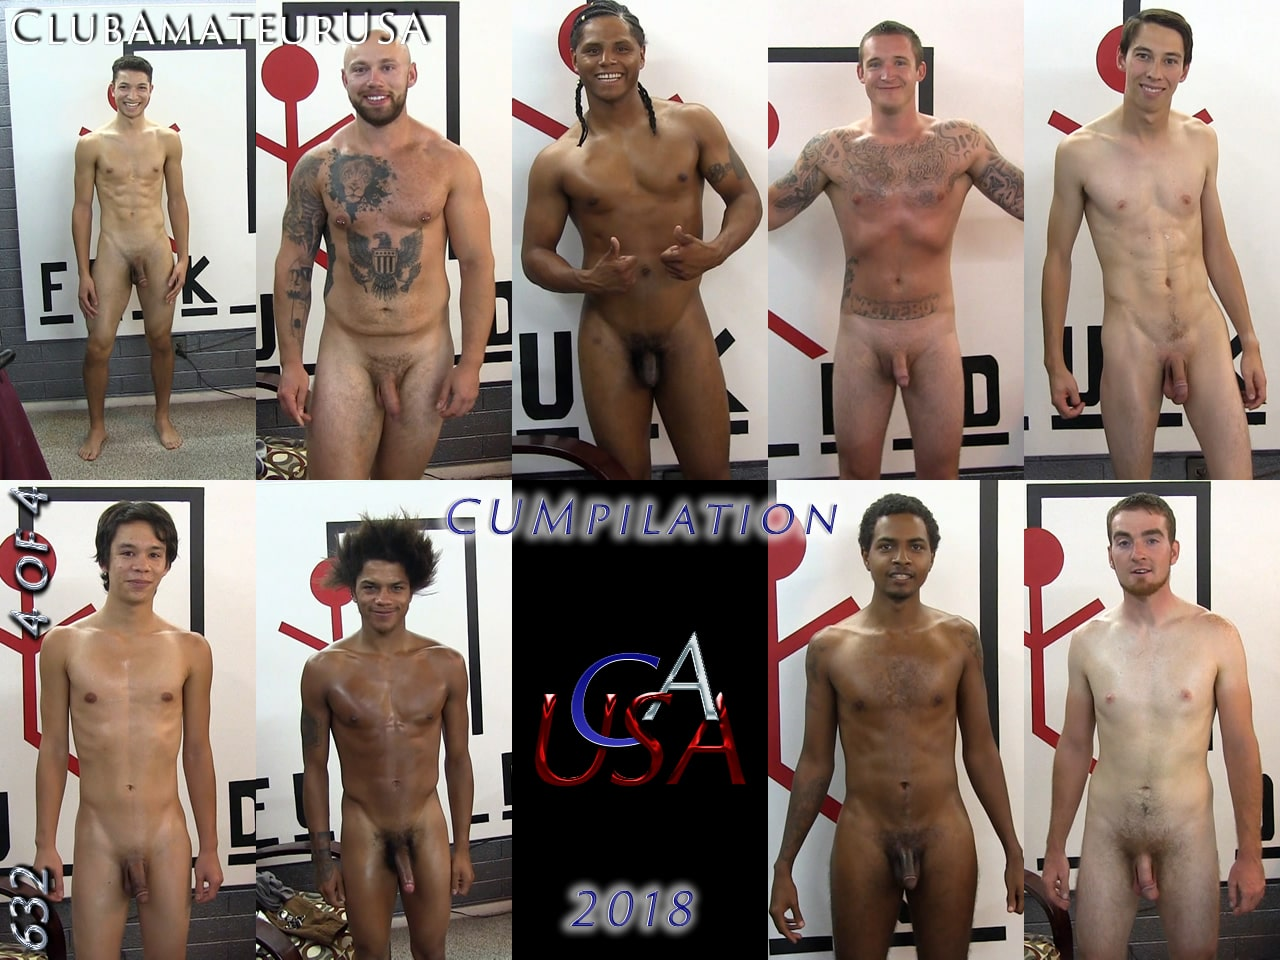 Download or Stream CUMpilation 2018 - 4 of 4 - Click Here Now